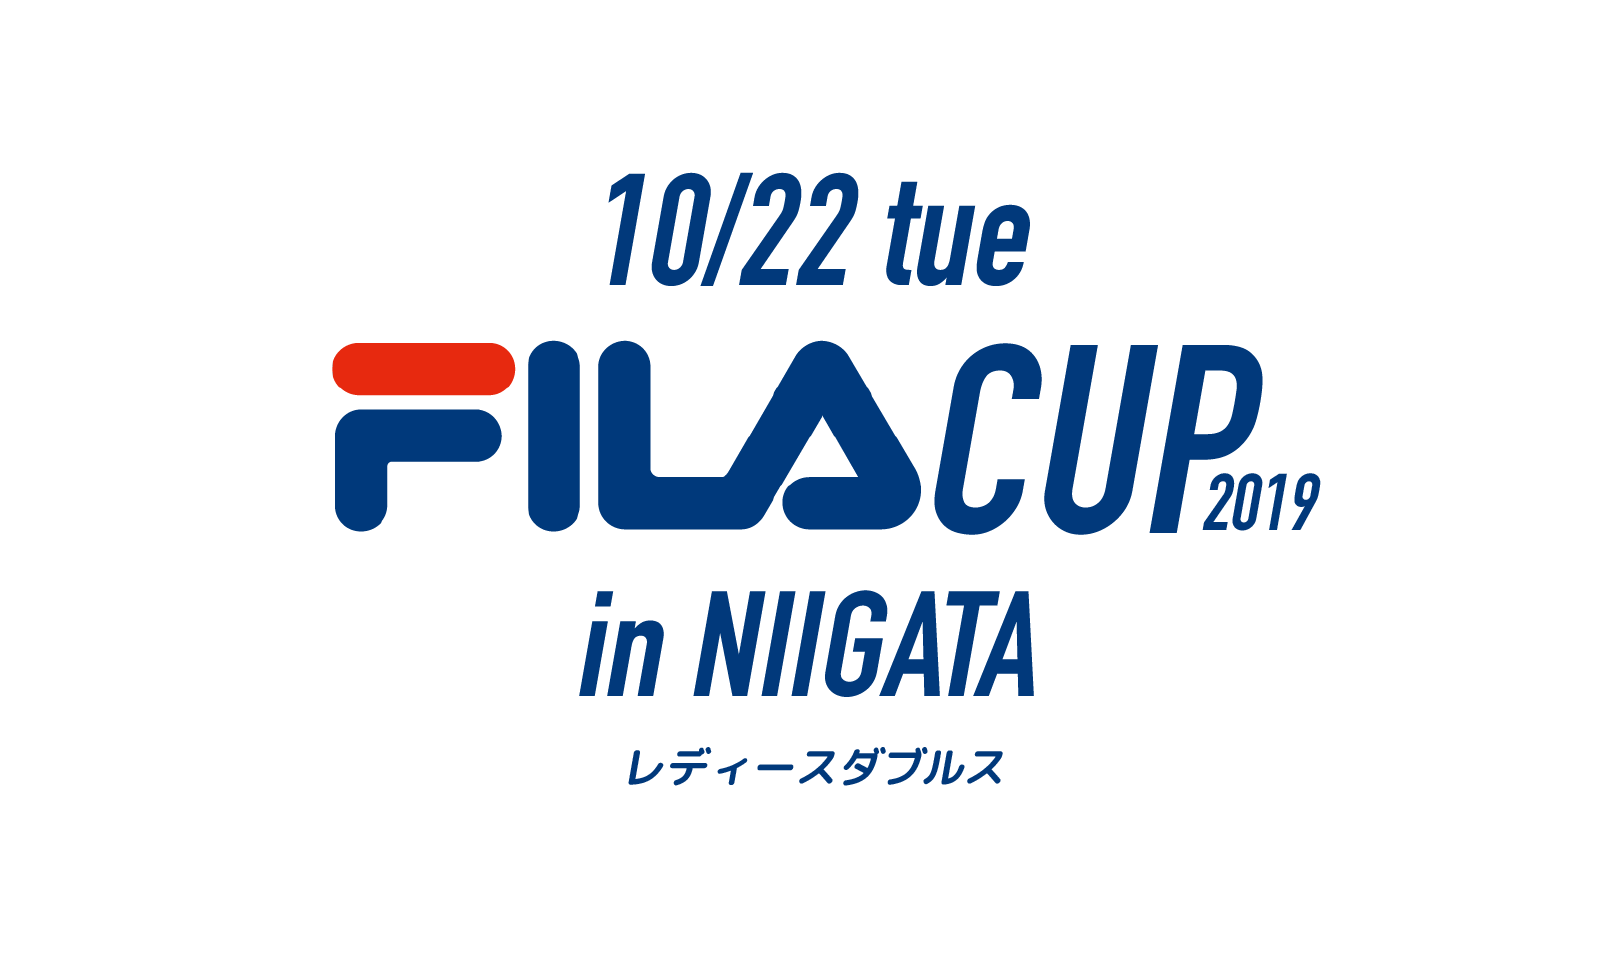 FILA CUP 2019 in NIIGATA 10月22日(火)